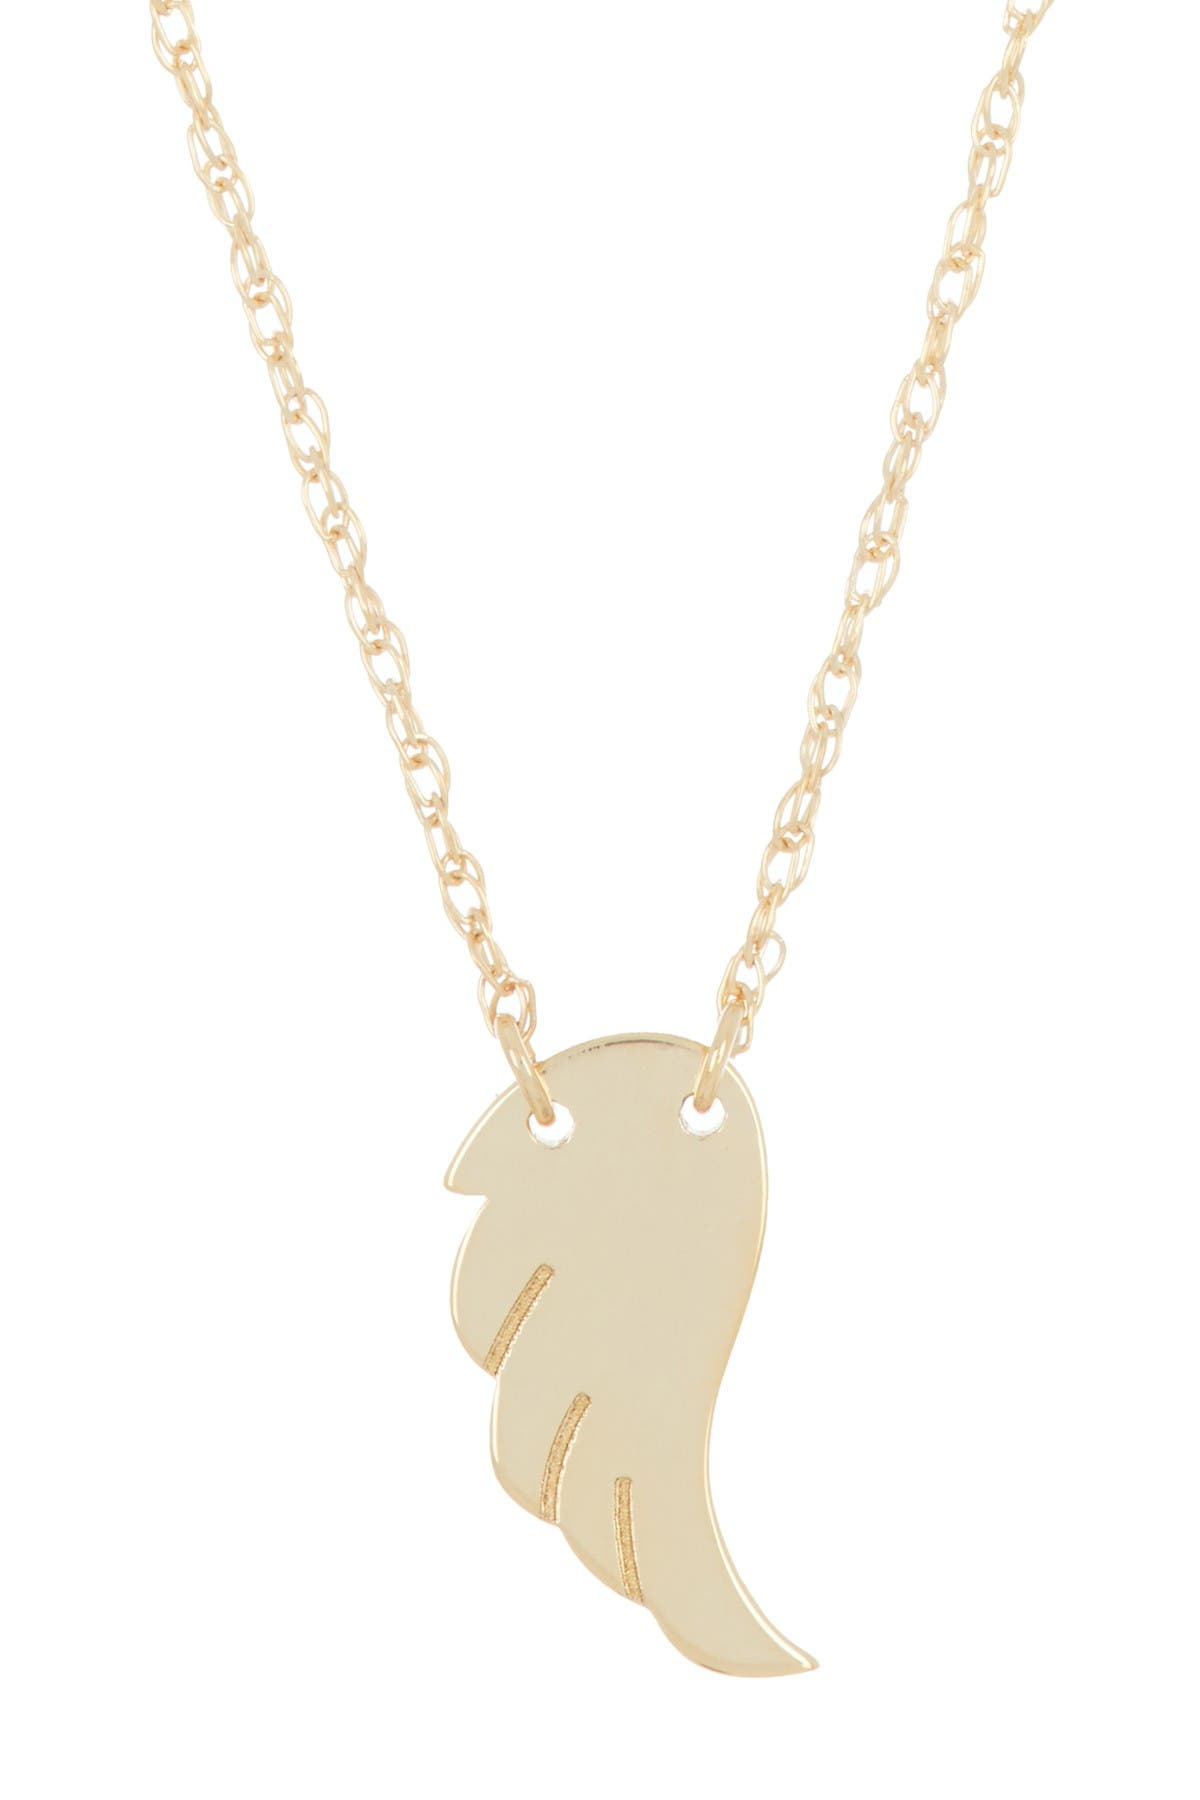 Image of Candela 10K Yellow Gold Mini Wing Pendant Necklace